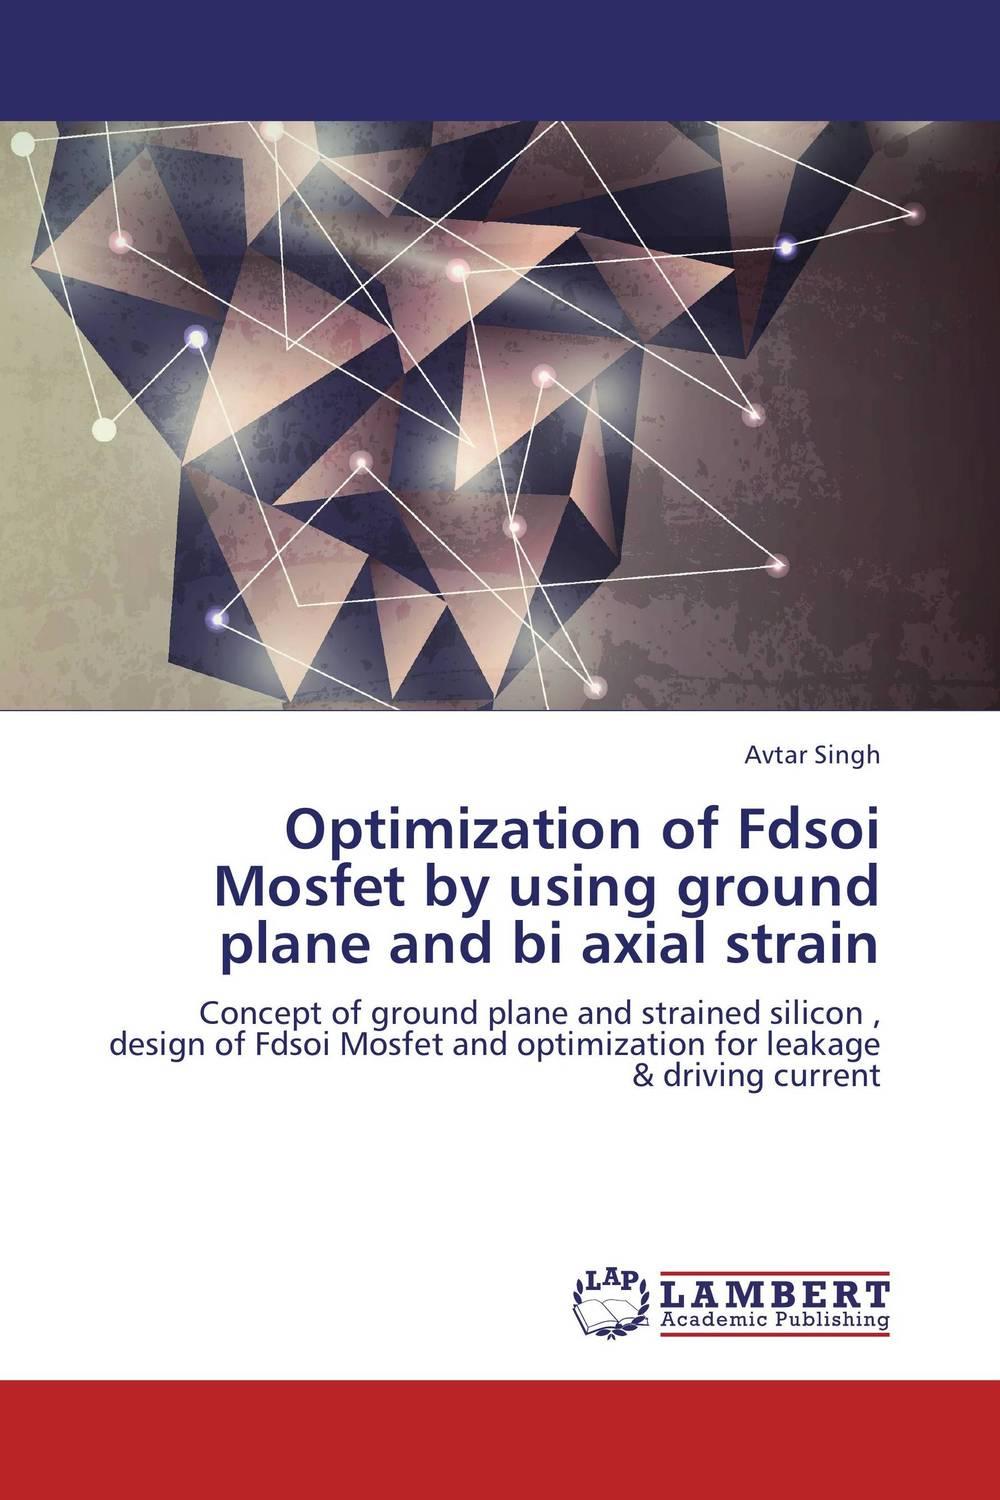 Optimization of Fdsoi Mosfet by using ground plane and bi axial strain maisy goes by plane